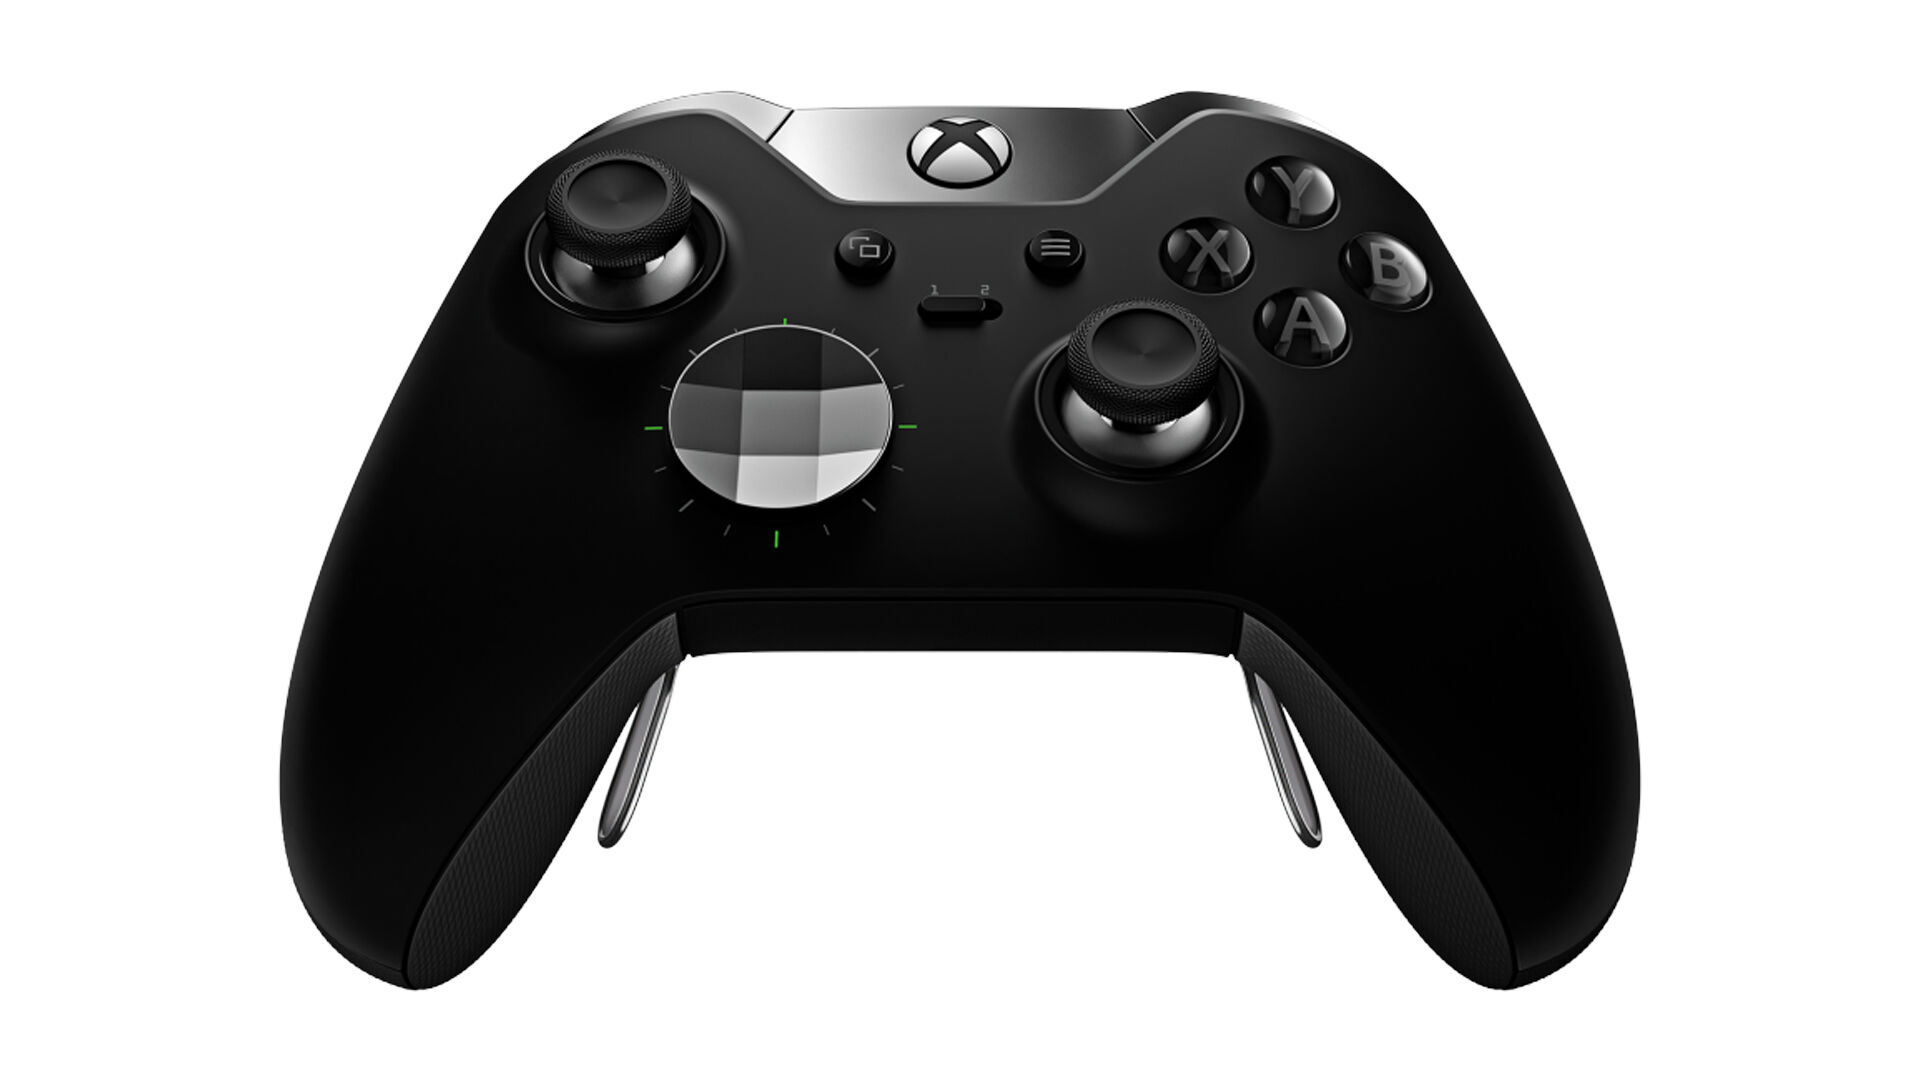 Jelly Deals Xbox One Elite Controller With Shadow Of War Or Forza 7 For 110 Eurogamer Net